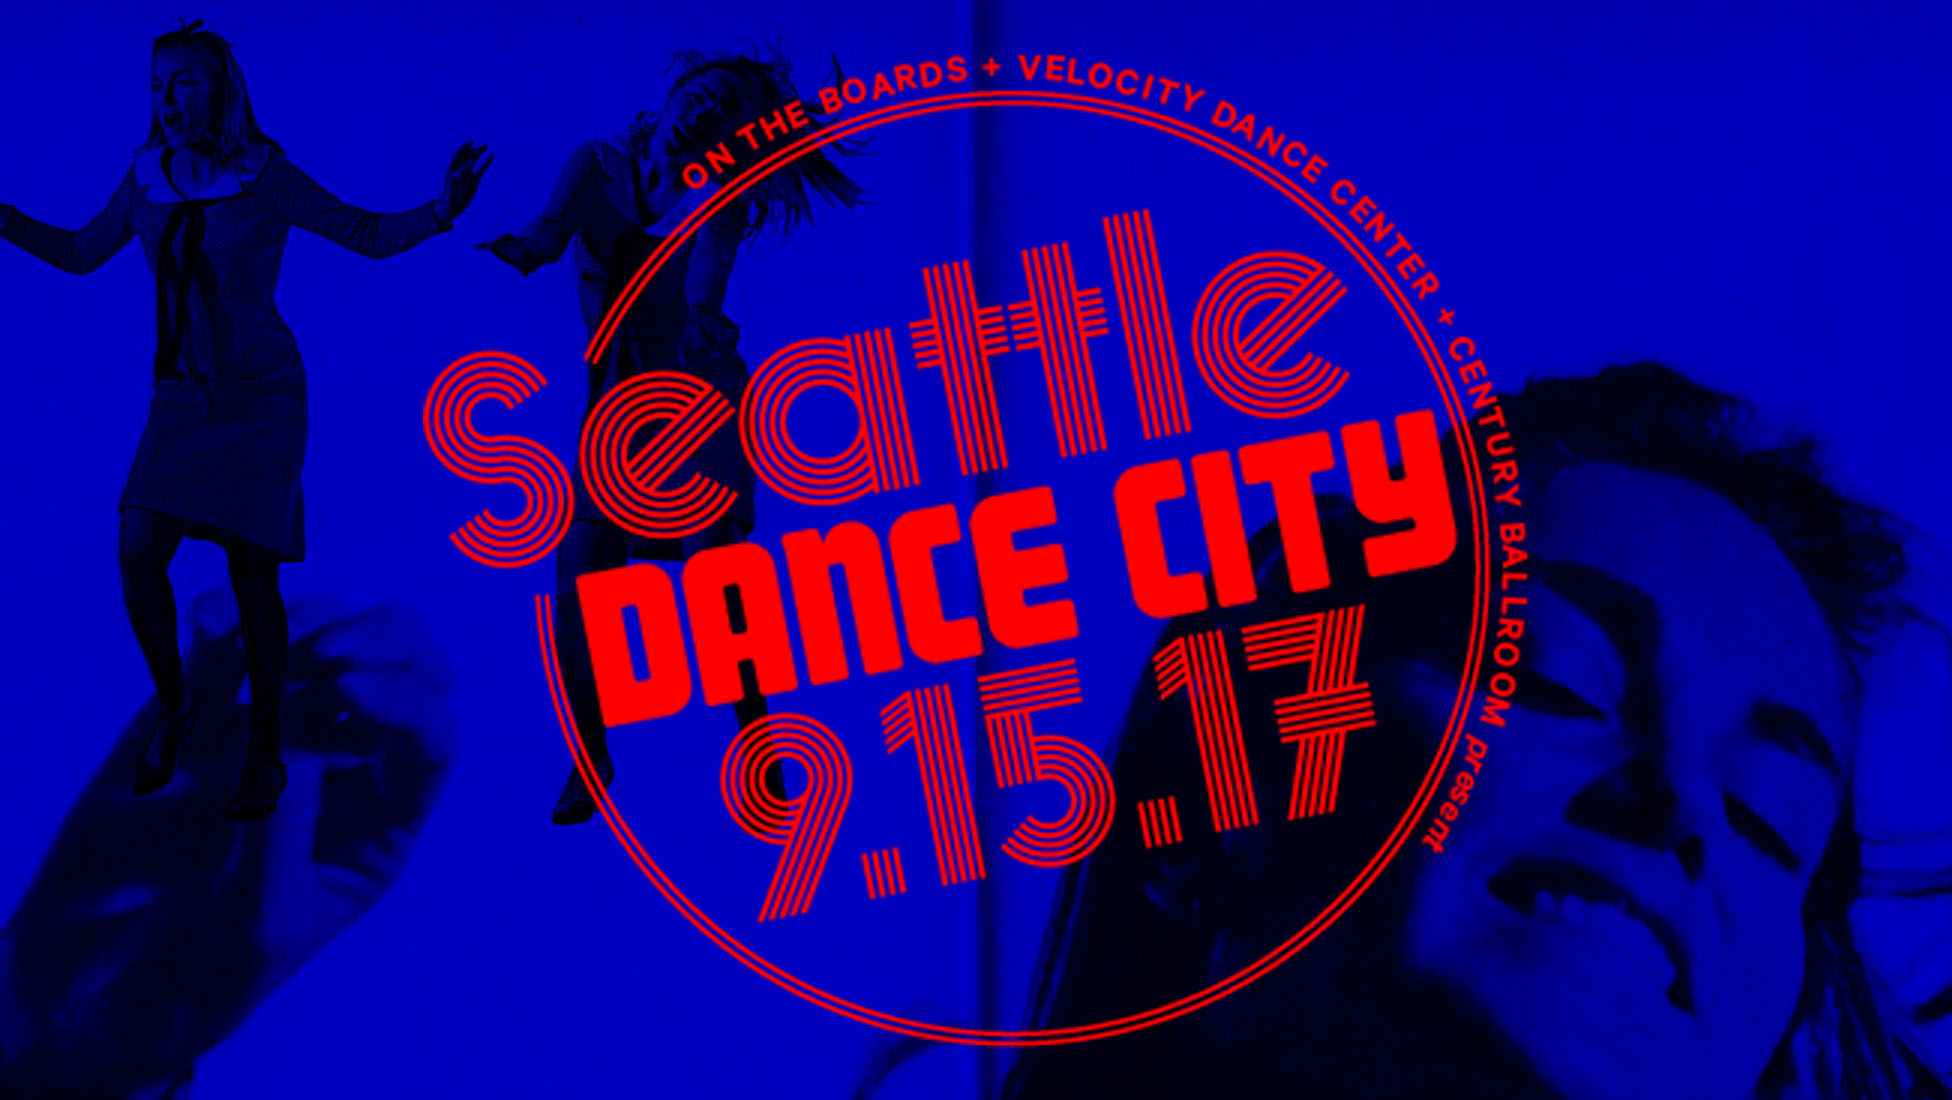 SeattleDanceCity_FBEvent_20170808_v0_office10LOGO